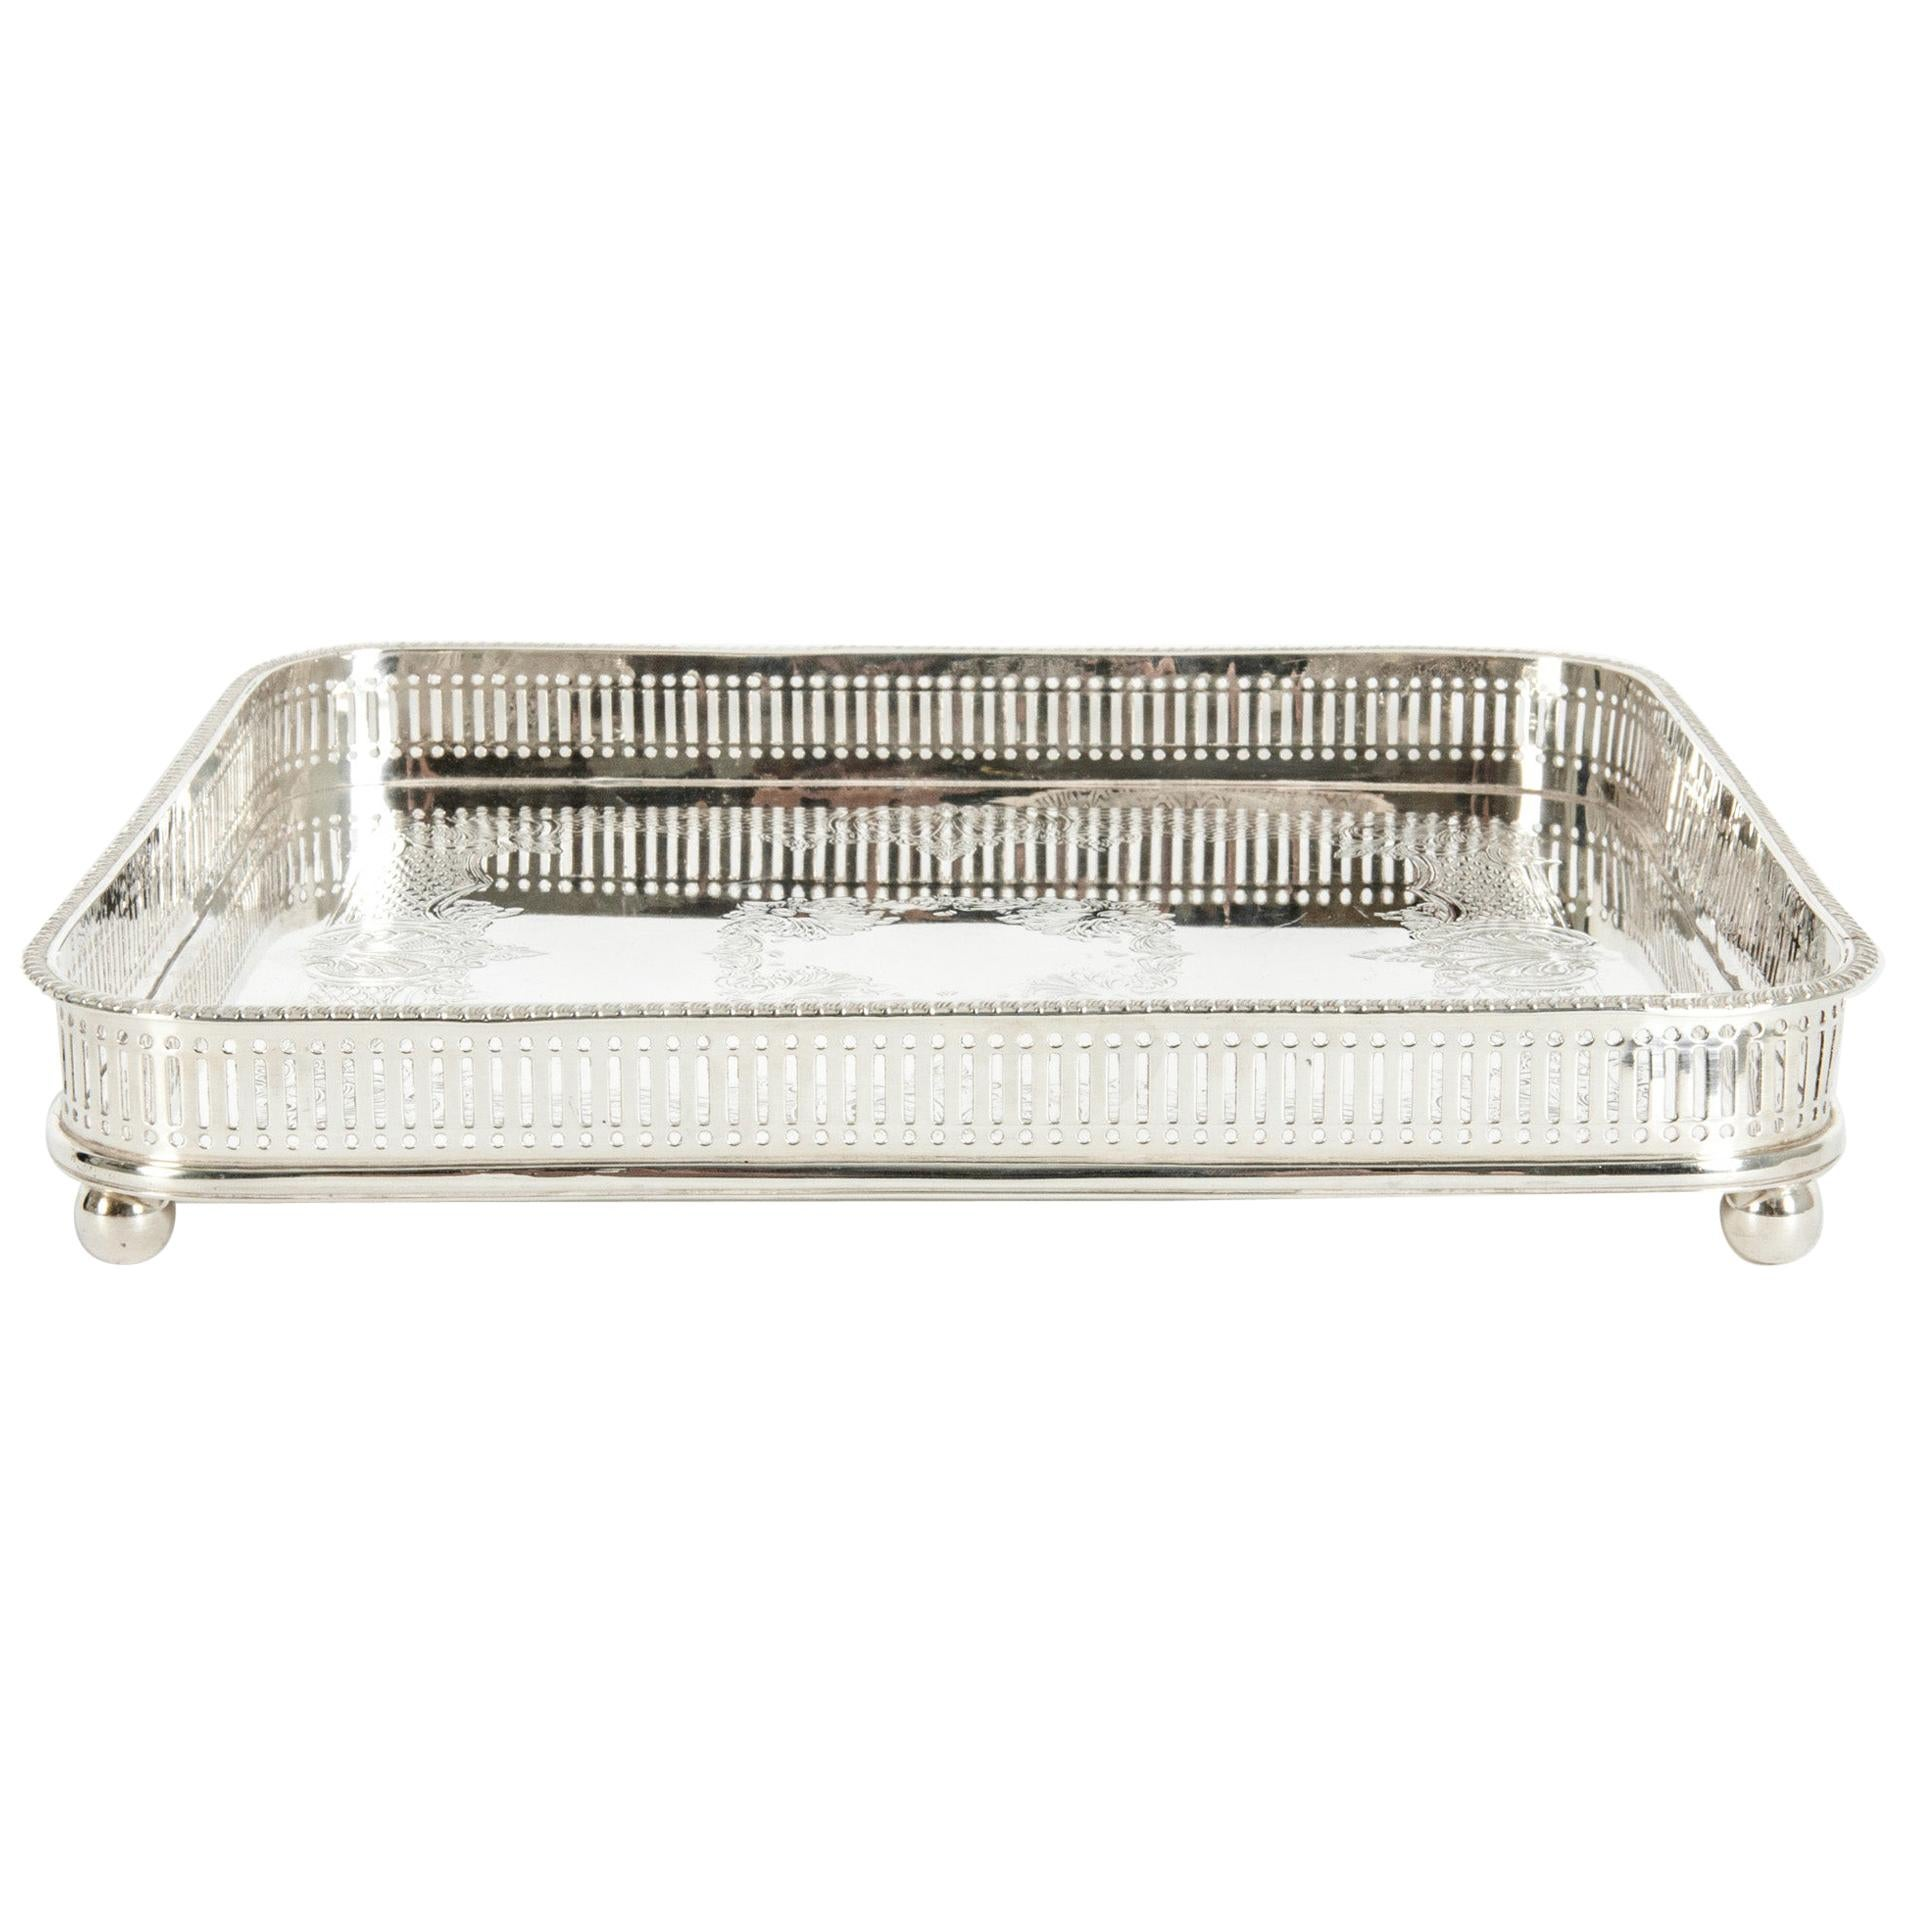 English Sheffield Plated Footed Barware Gallery Tray